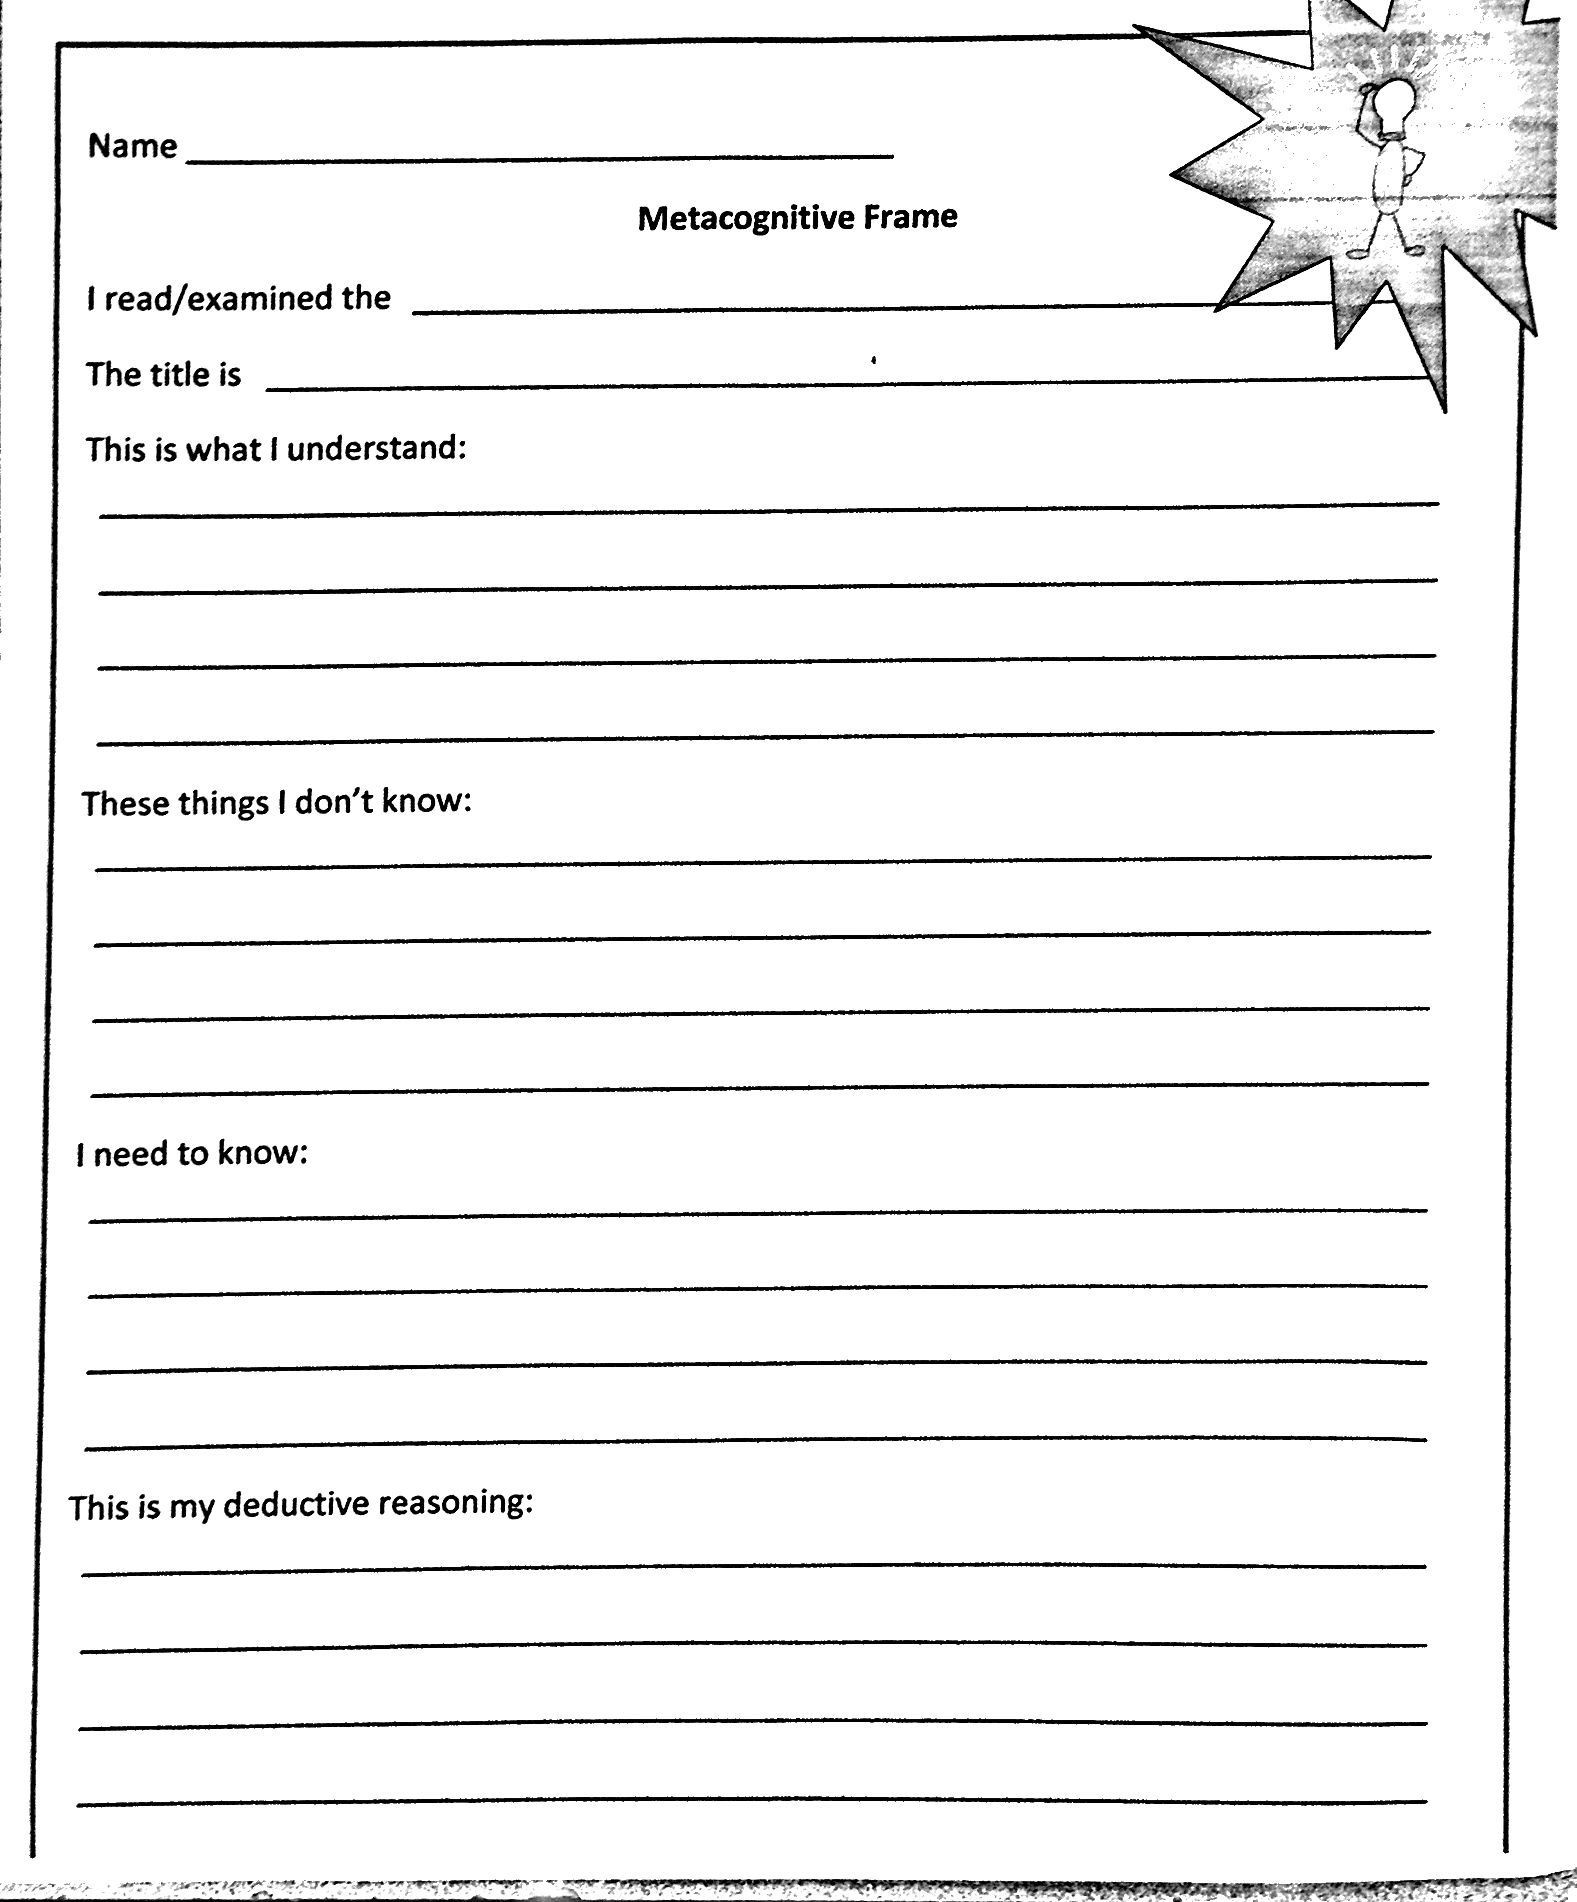 6th Grade History Worksheets Best social Stu S for 7th Graders Worksheet